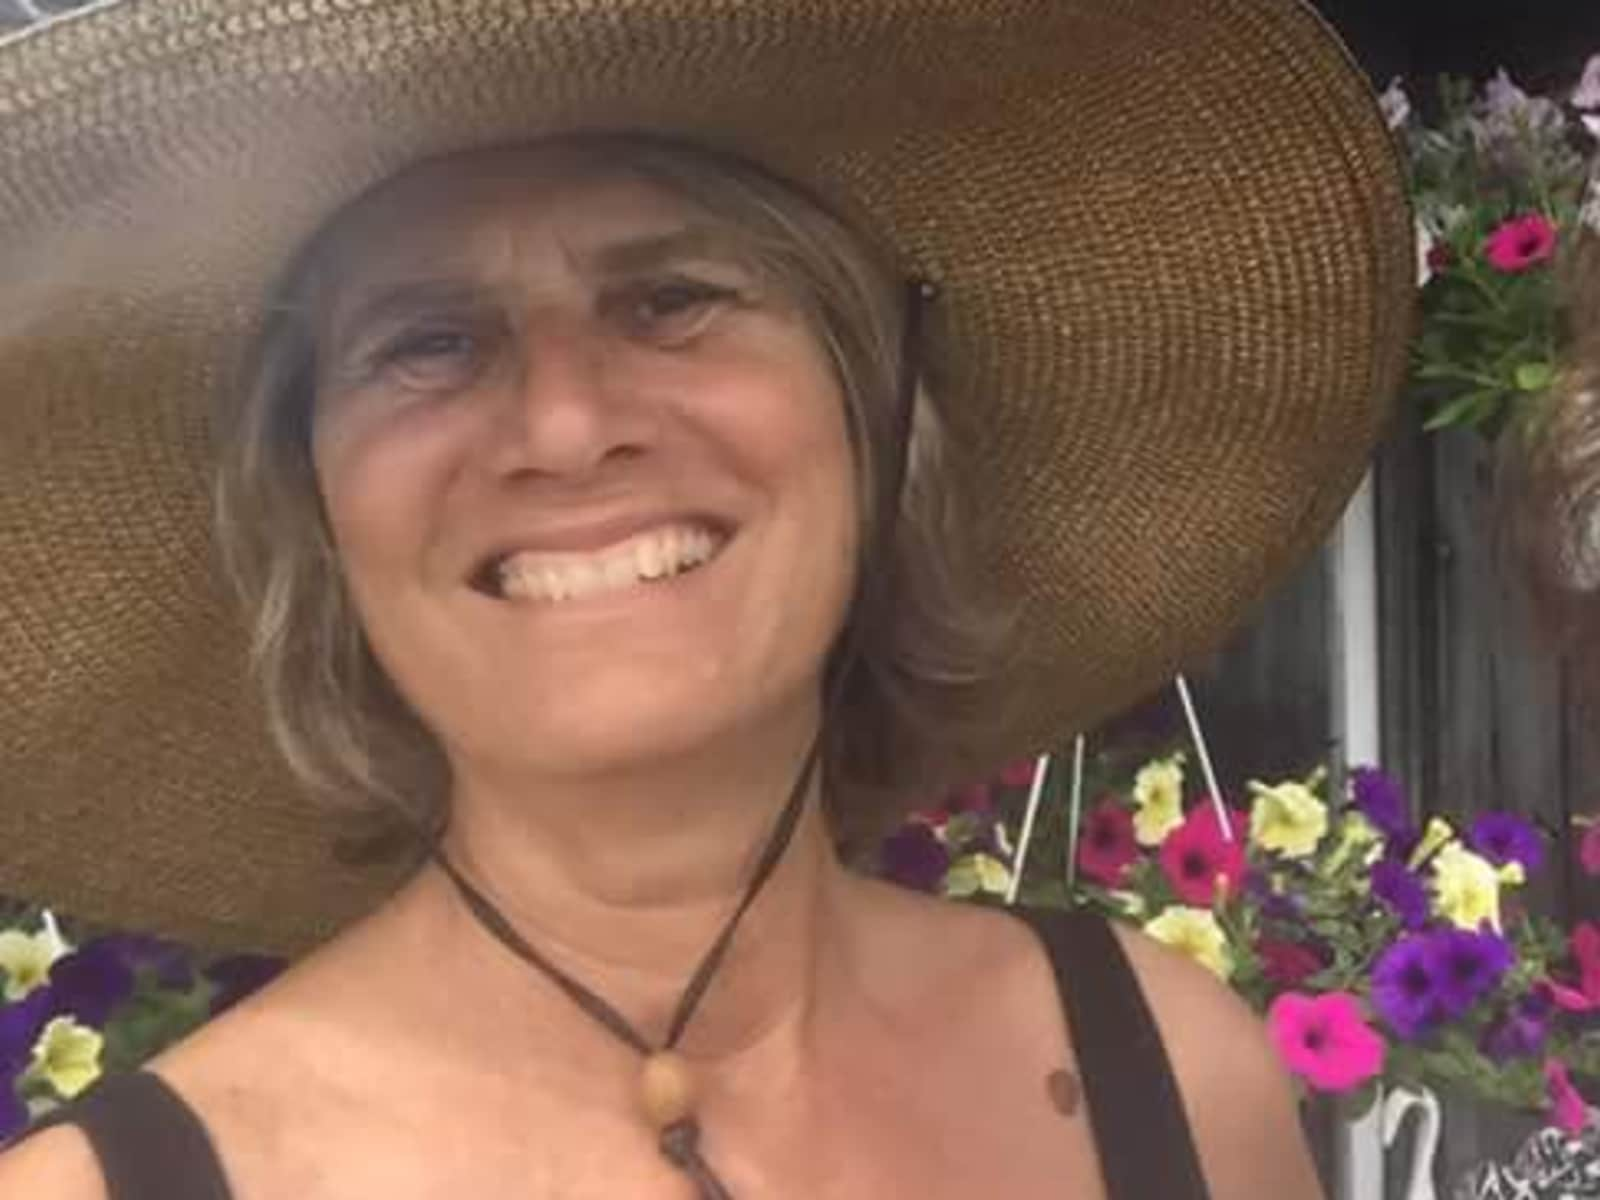 Robin from Whately, Massachusetts, United States